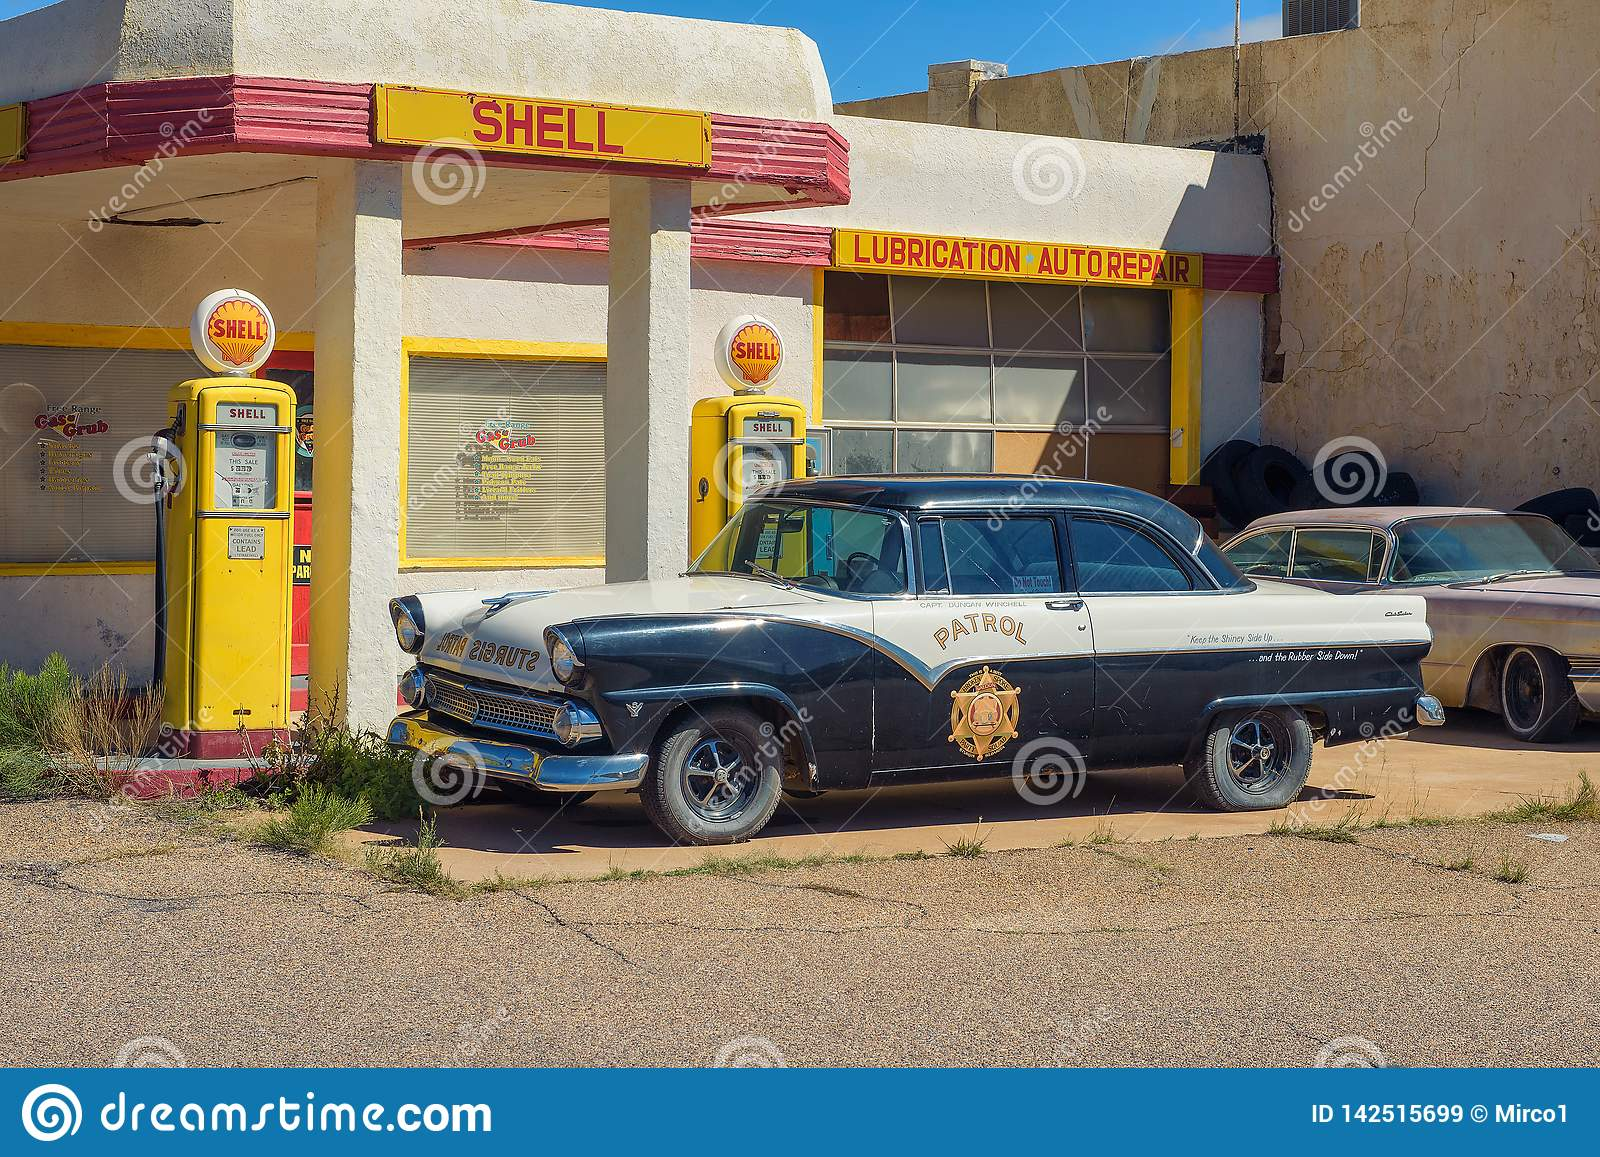 Historic Shell gas station in the abandoned mine town of Lowell, Arizona